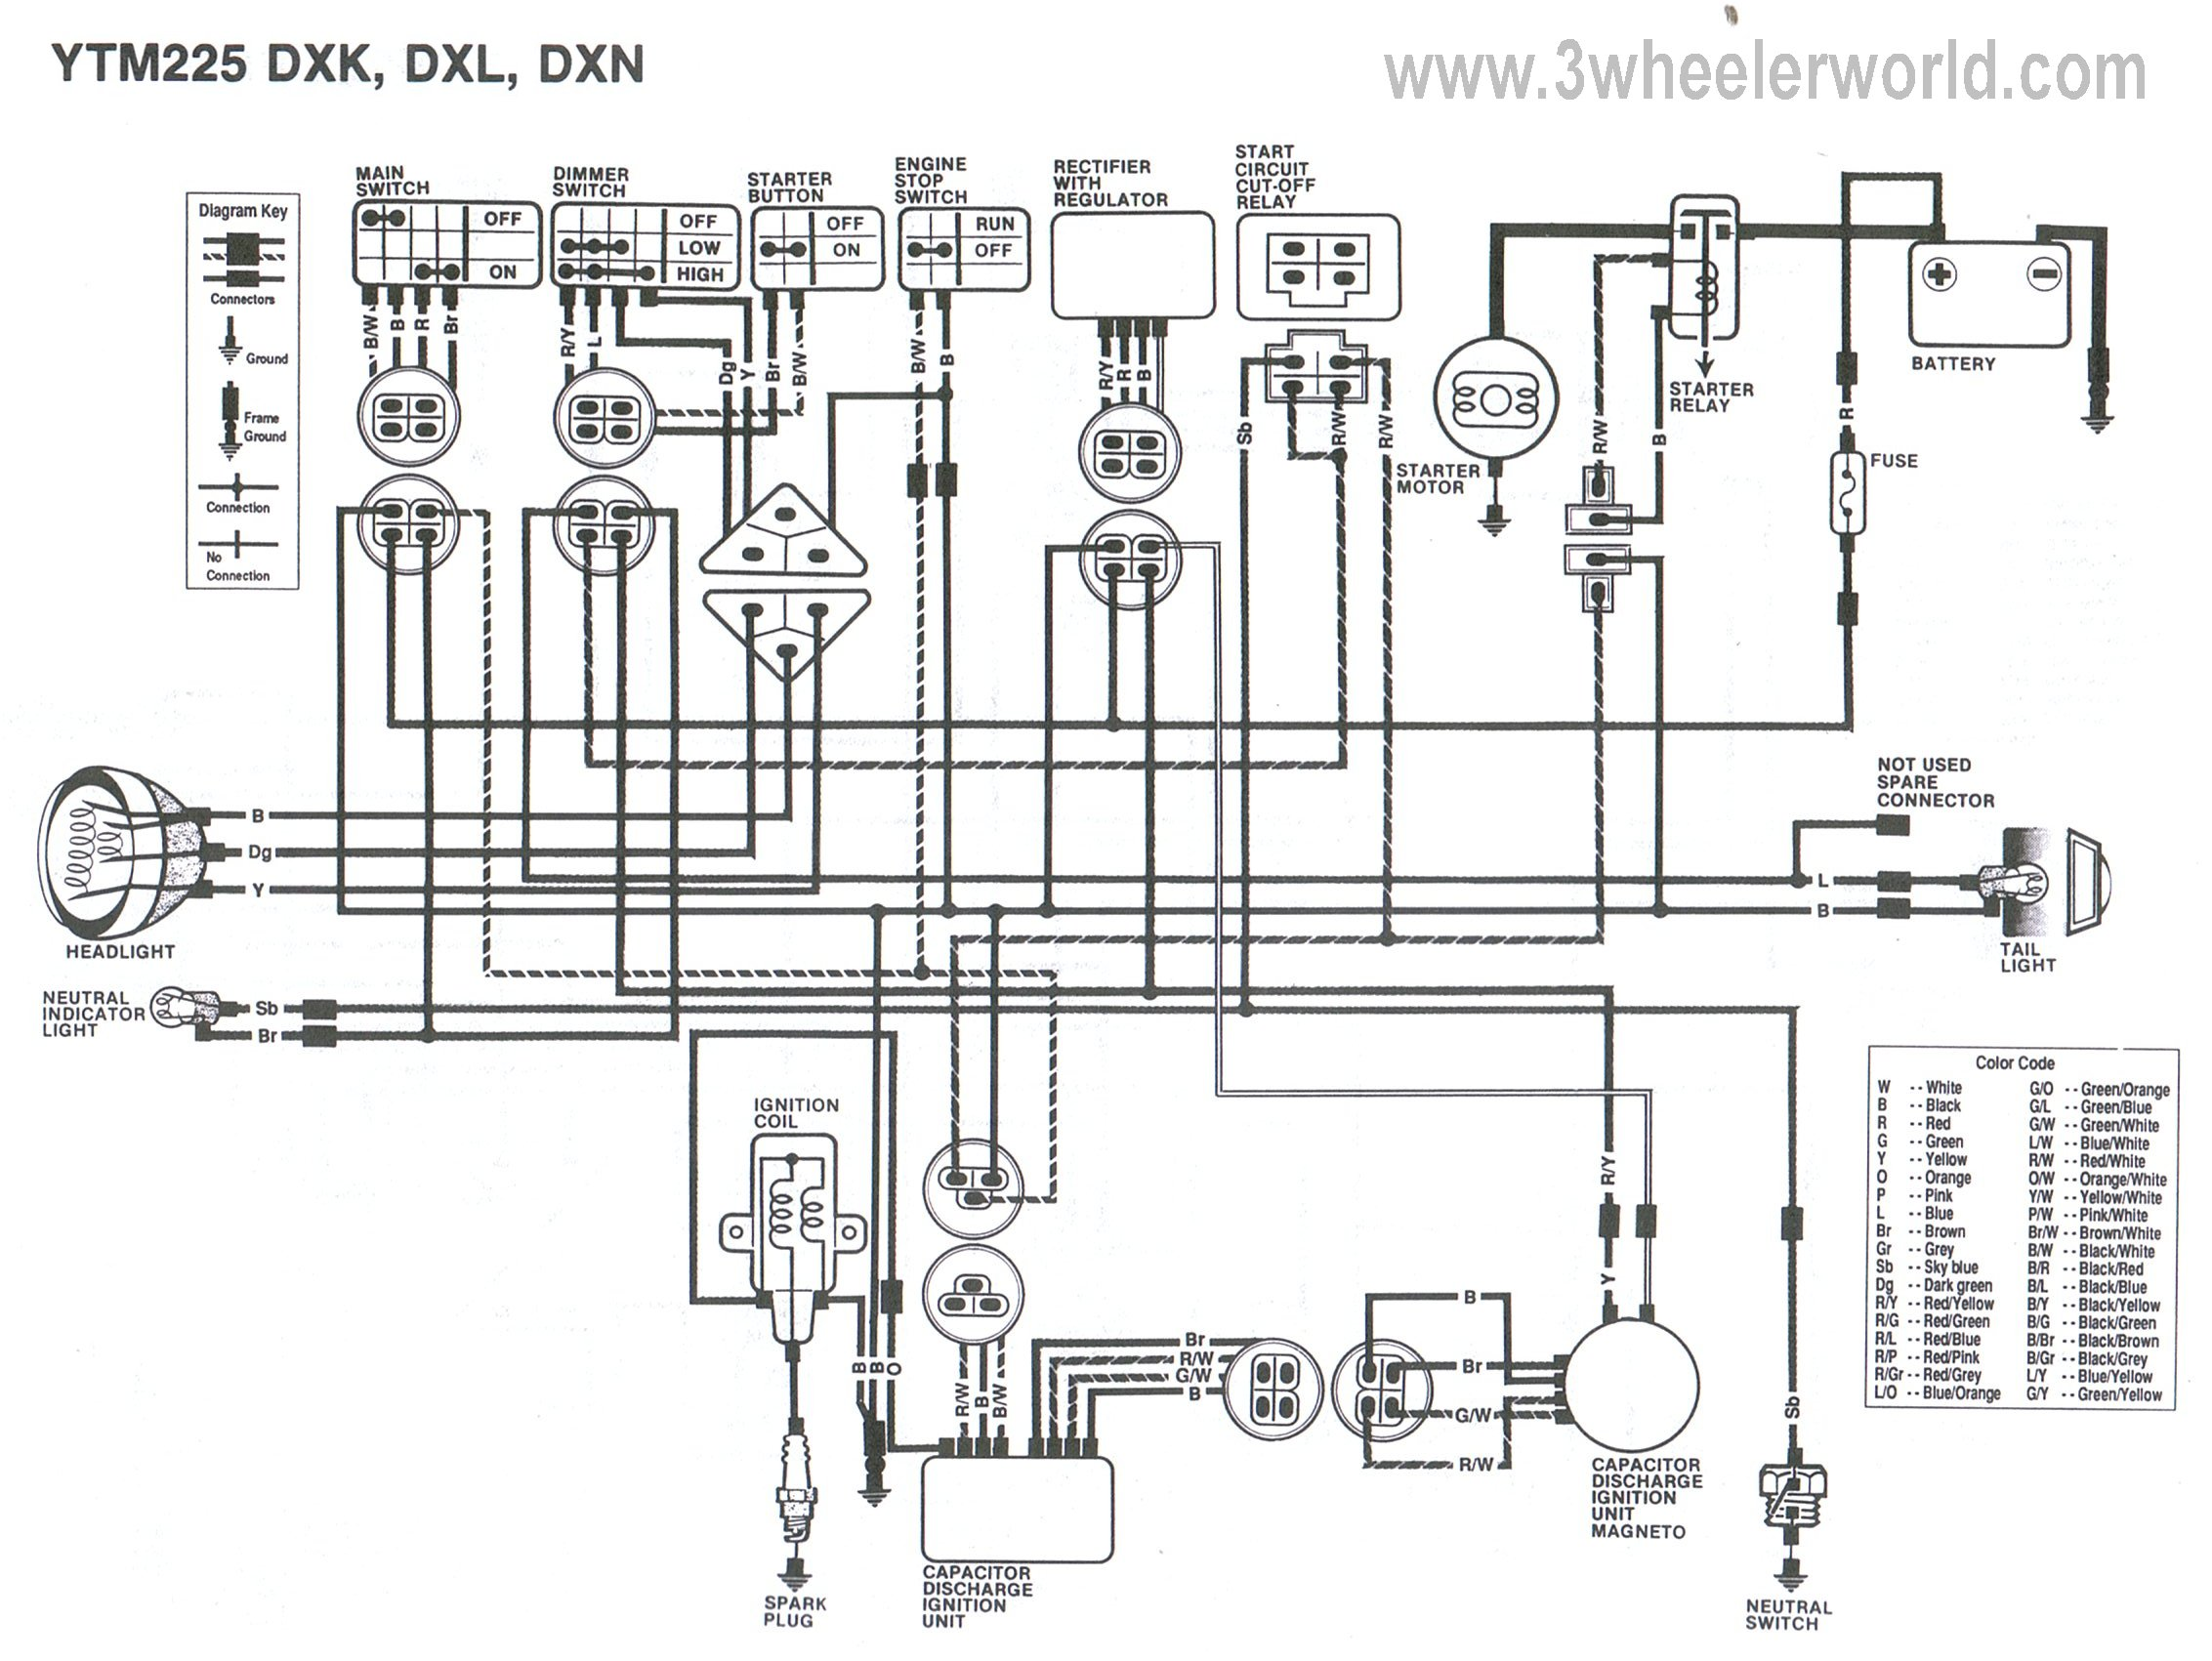 YTM225DXKDXLDXN 3 wheeler world tech help yamaha wiring diagrams yamaha moto 4 250 wiring diagrams at gsmx.co